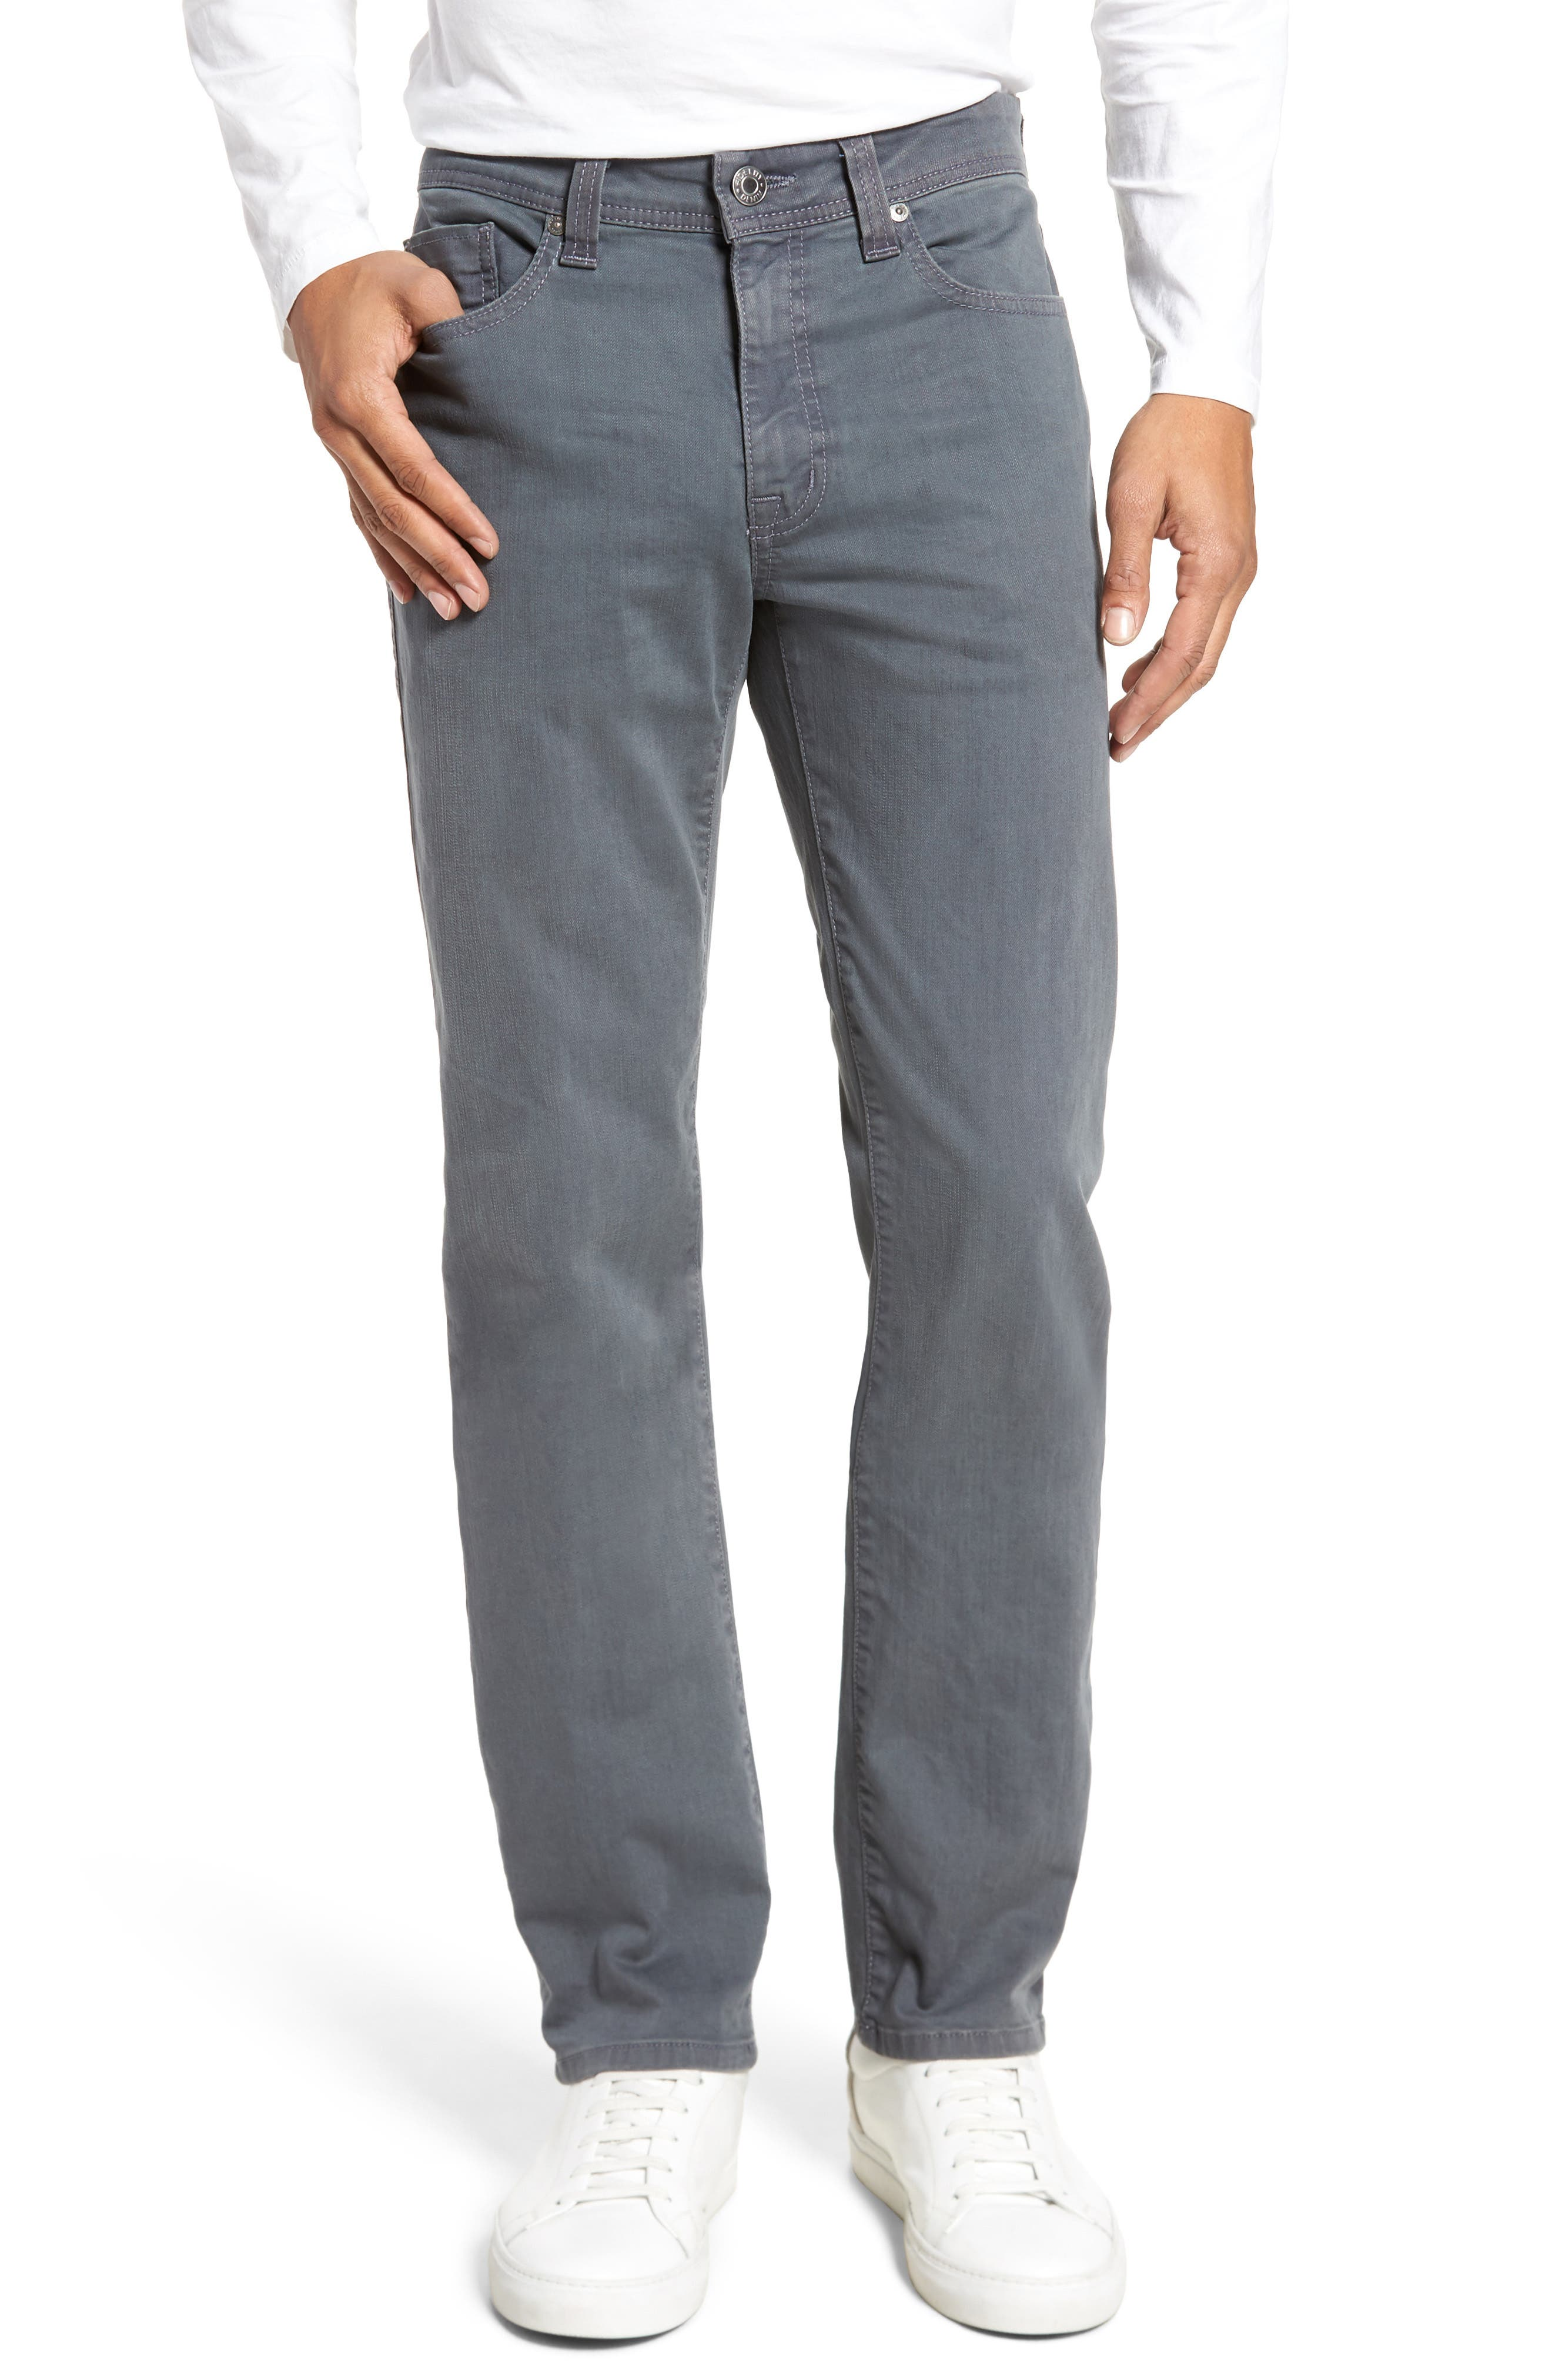 Jimmy Slim Straight Fit Jeans,                             Main thumbnail 1, color,                             Oyster